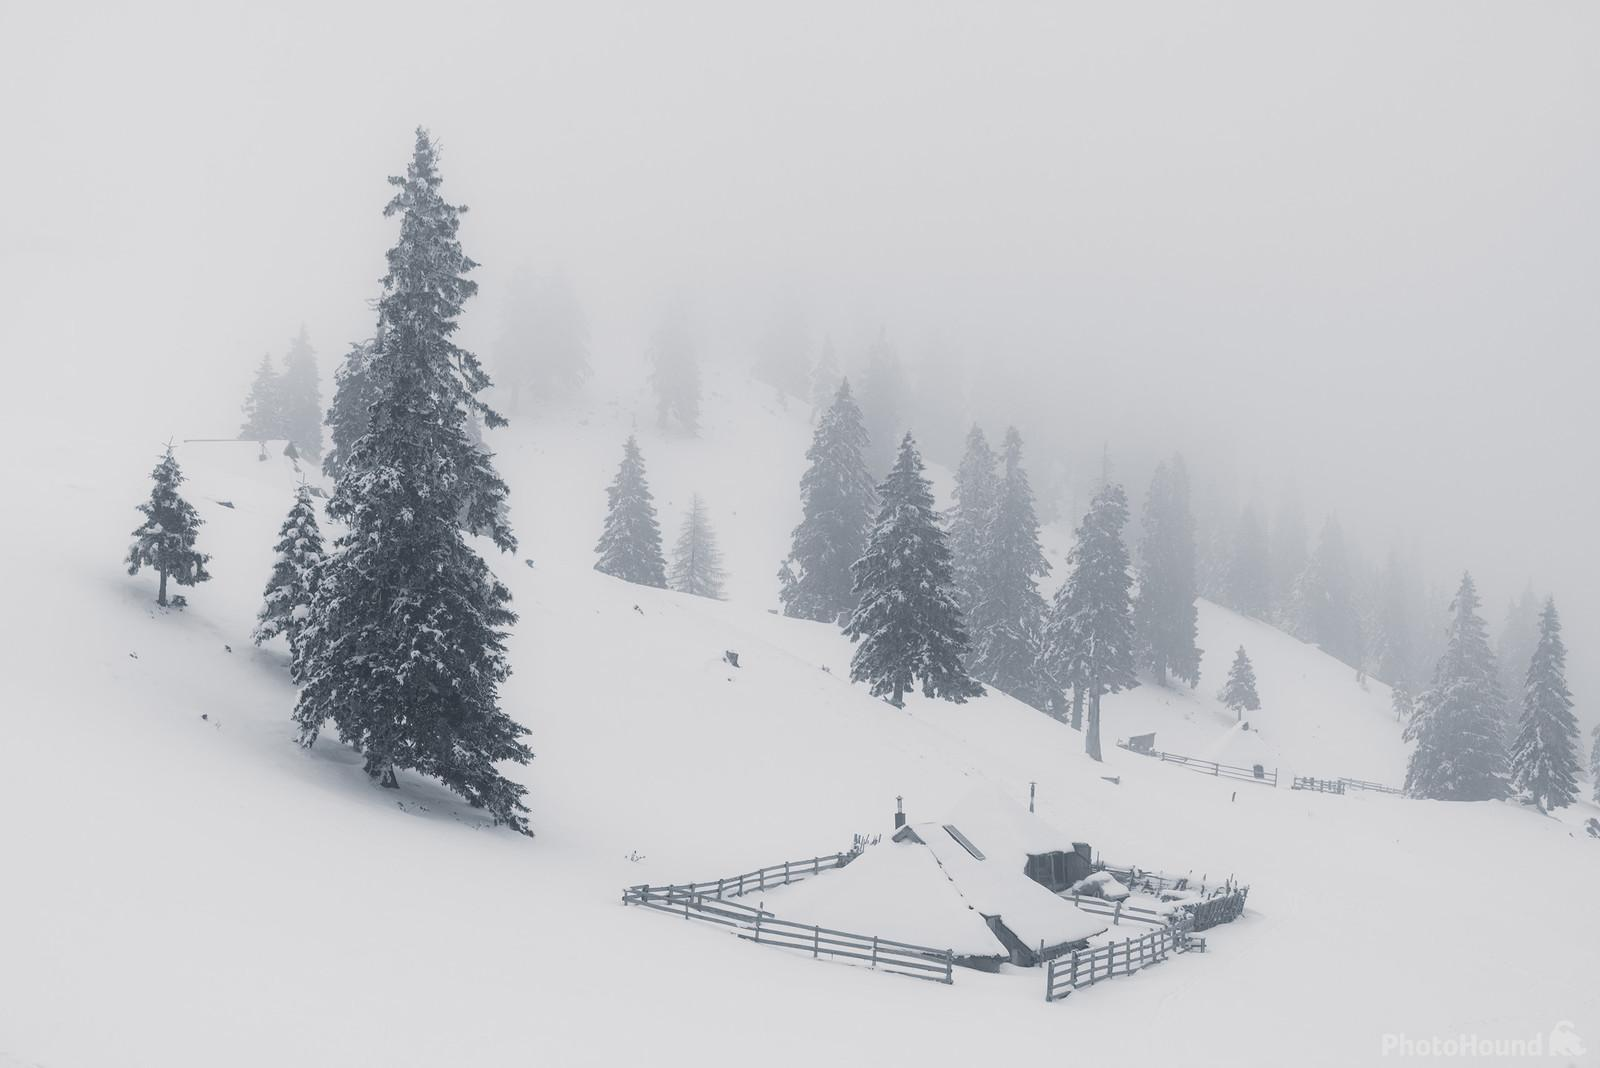 Whiteout at Mala Planina